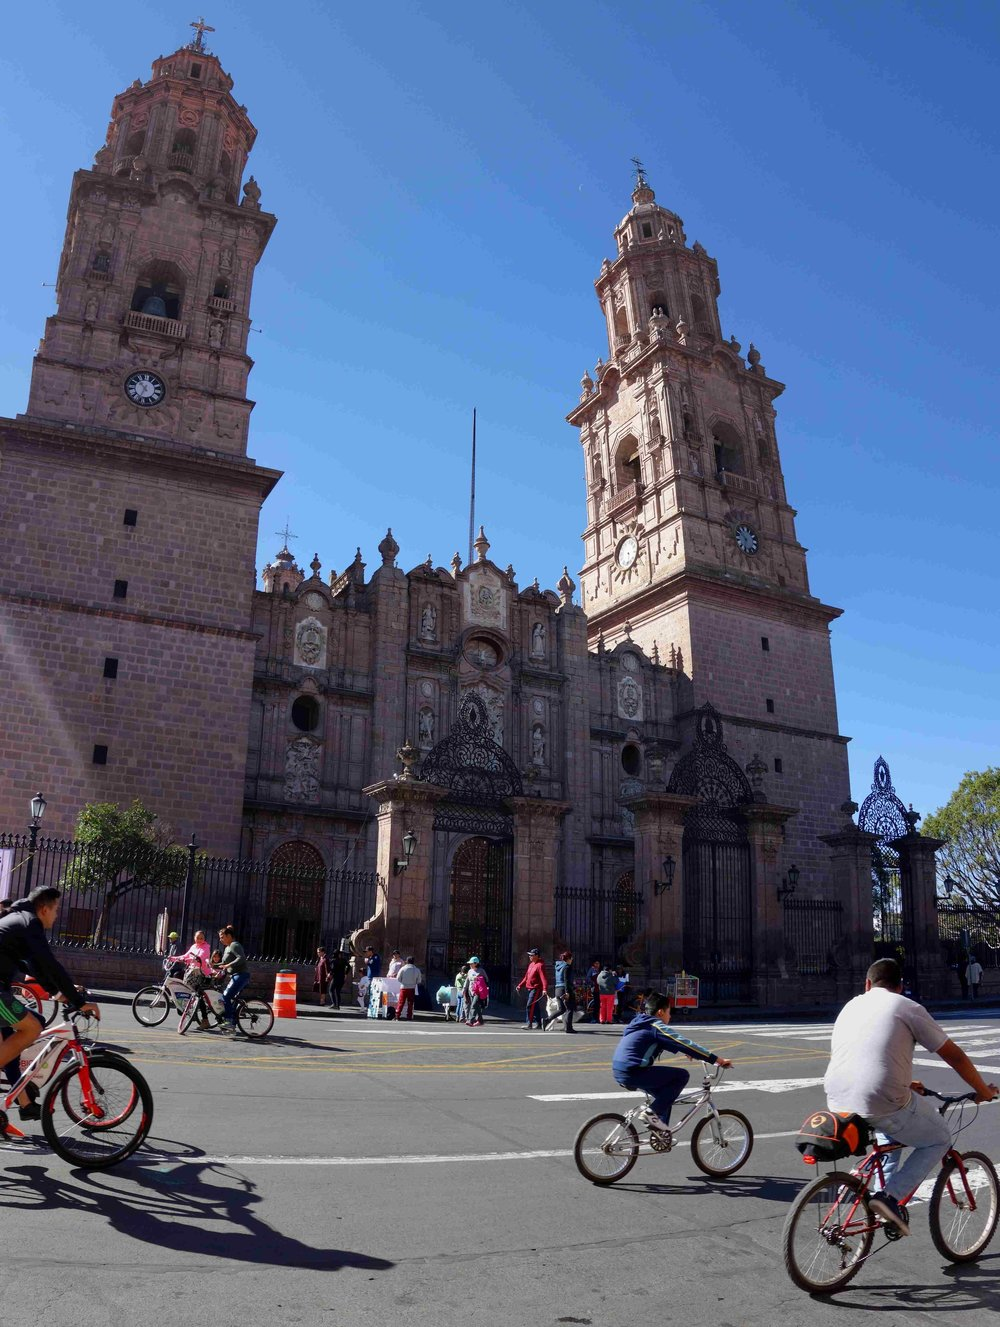 Morelia has pleanty of churches and old buildings.